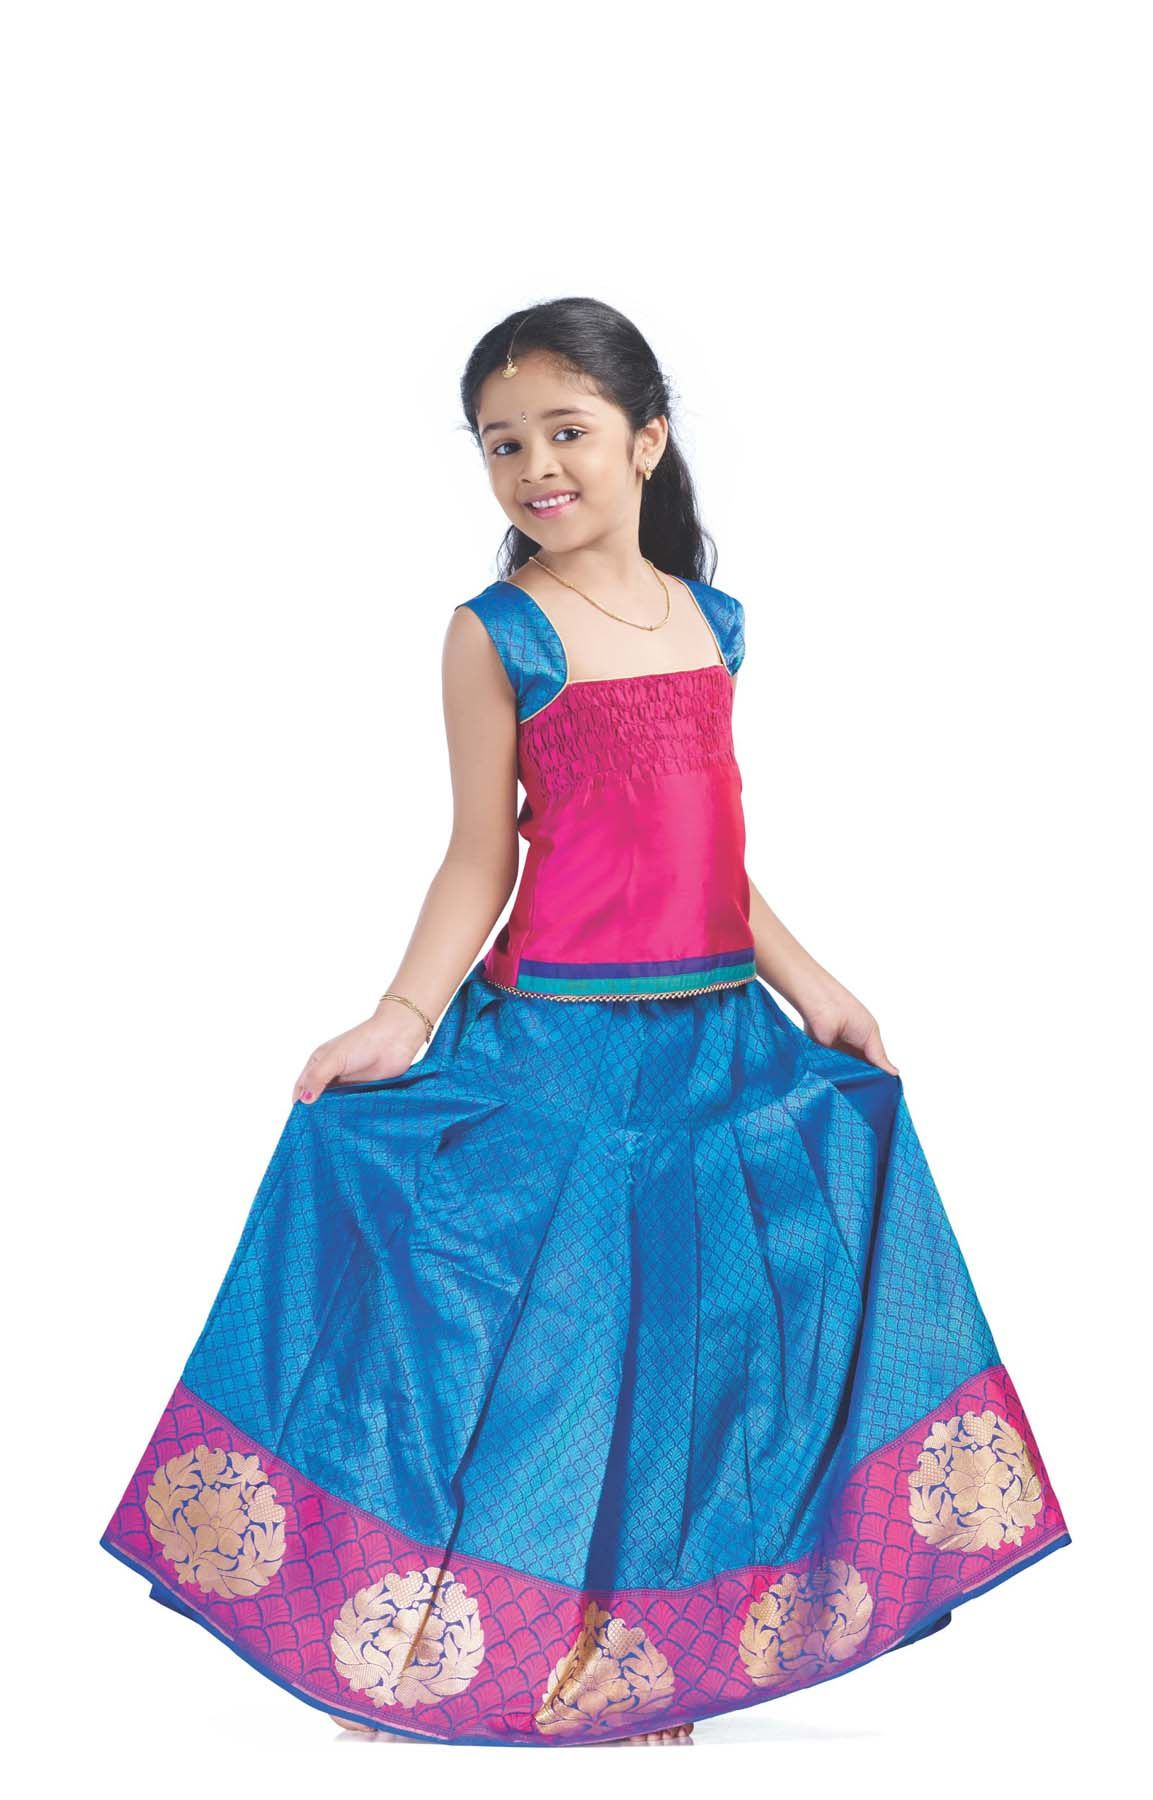 Inspiration For A Mithoian Girl S Clothes Ethnic Wear